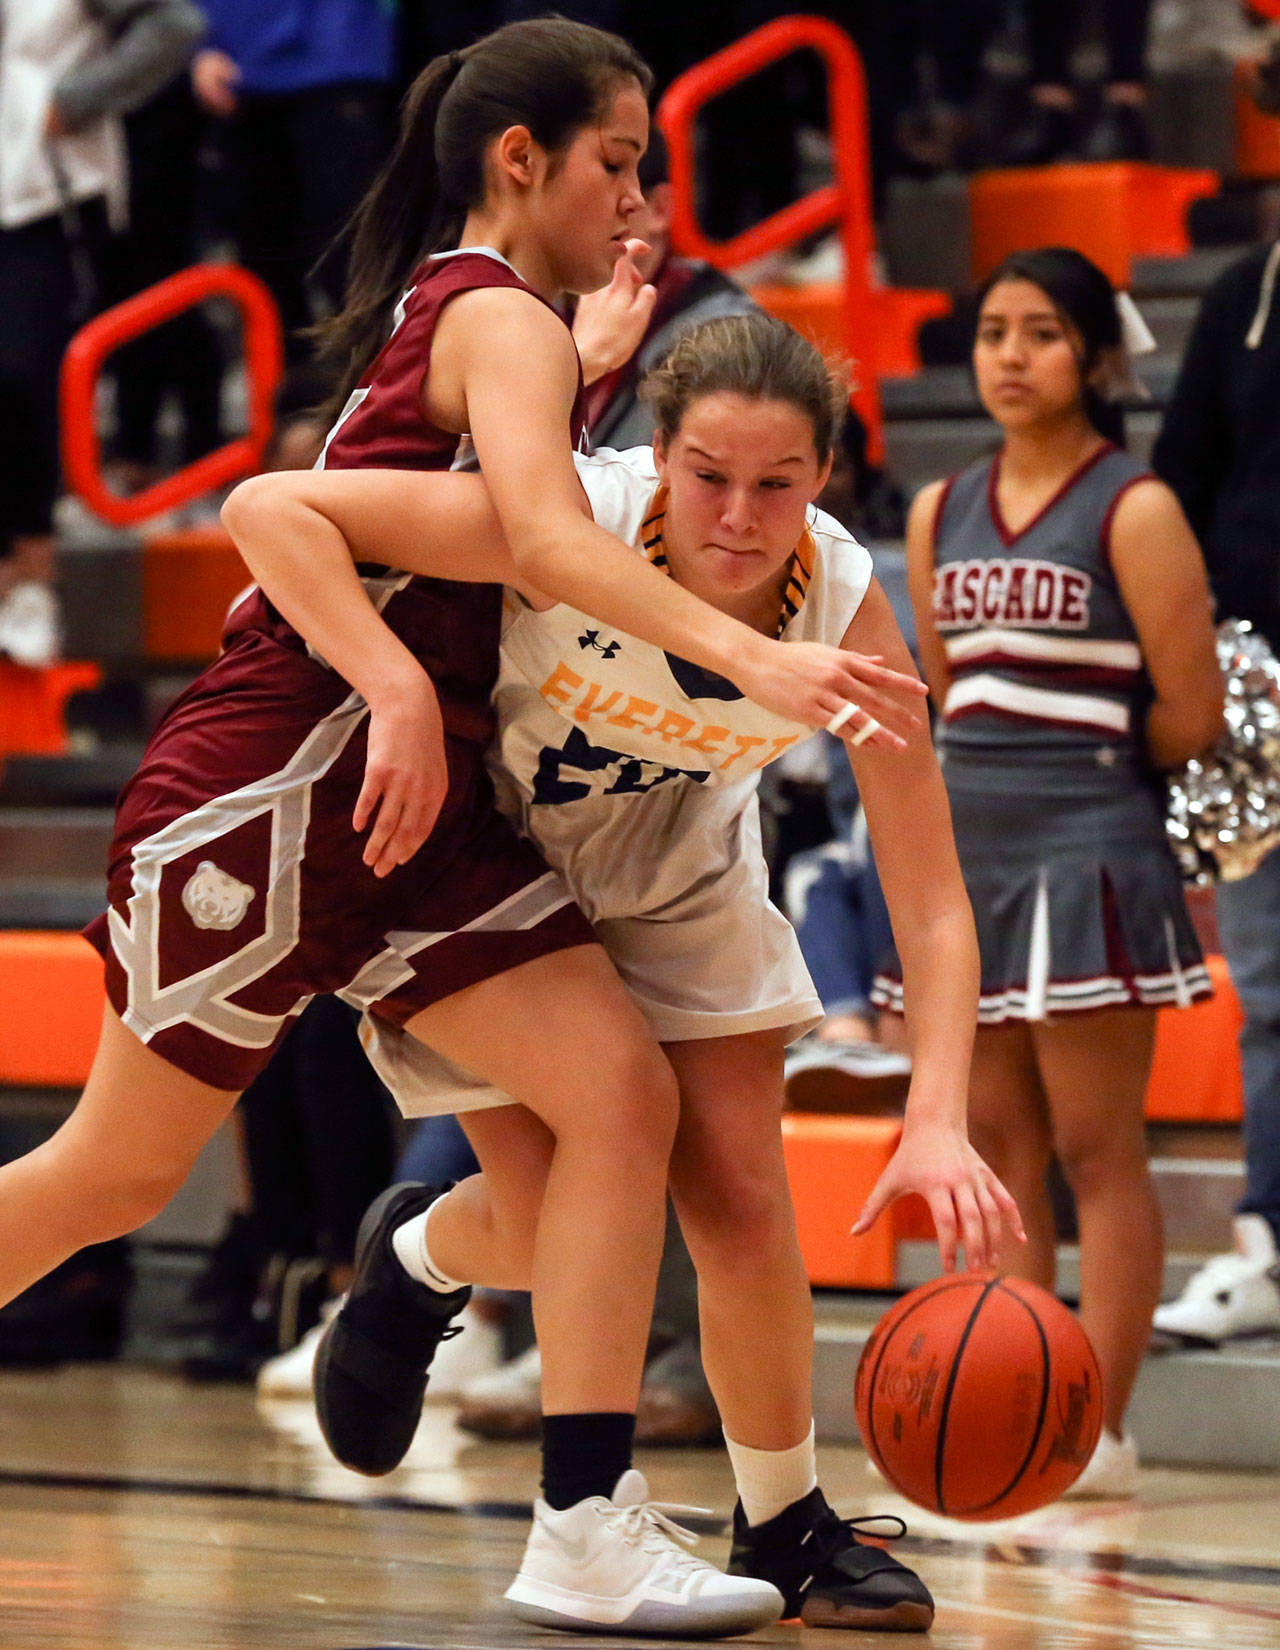 Cascade's Yaritza Pelayo (left) fouls Everett's Ella Sylvester during the second quarter of the annual BruGull Fest game Friday at the Walt Price Student Fitness Center at Everett Community College. Sylvester and the Seagulls won the cross-town rivalry clash 51-13. (Kevin Clark / The Herald)